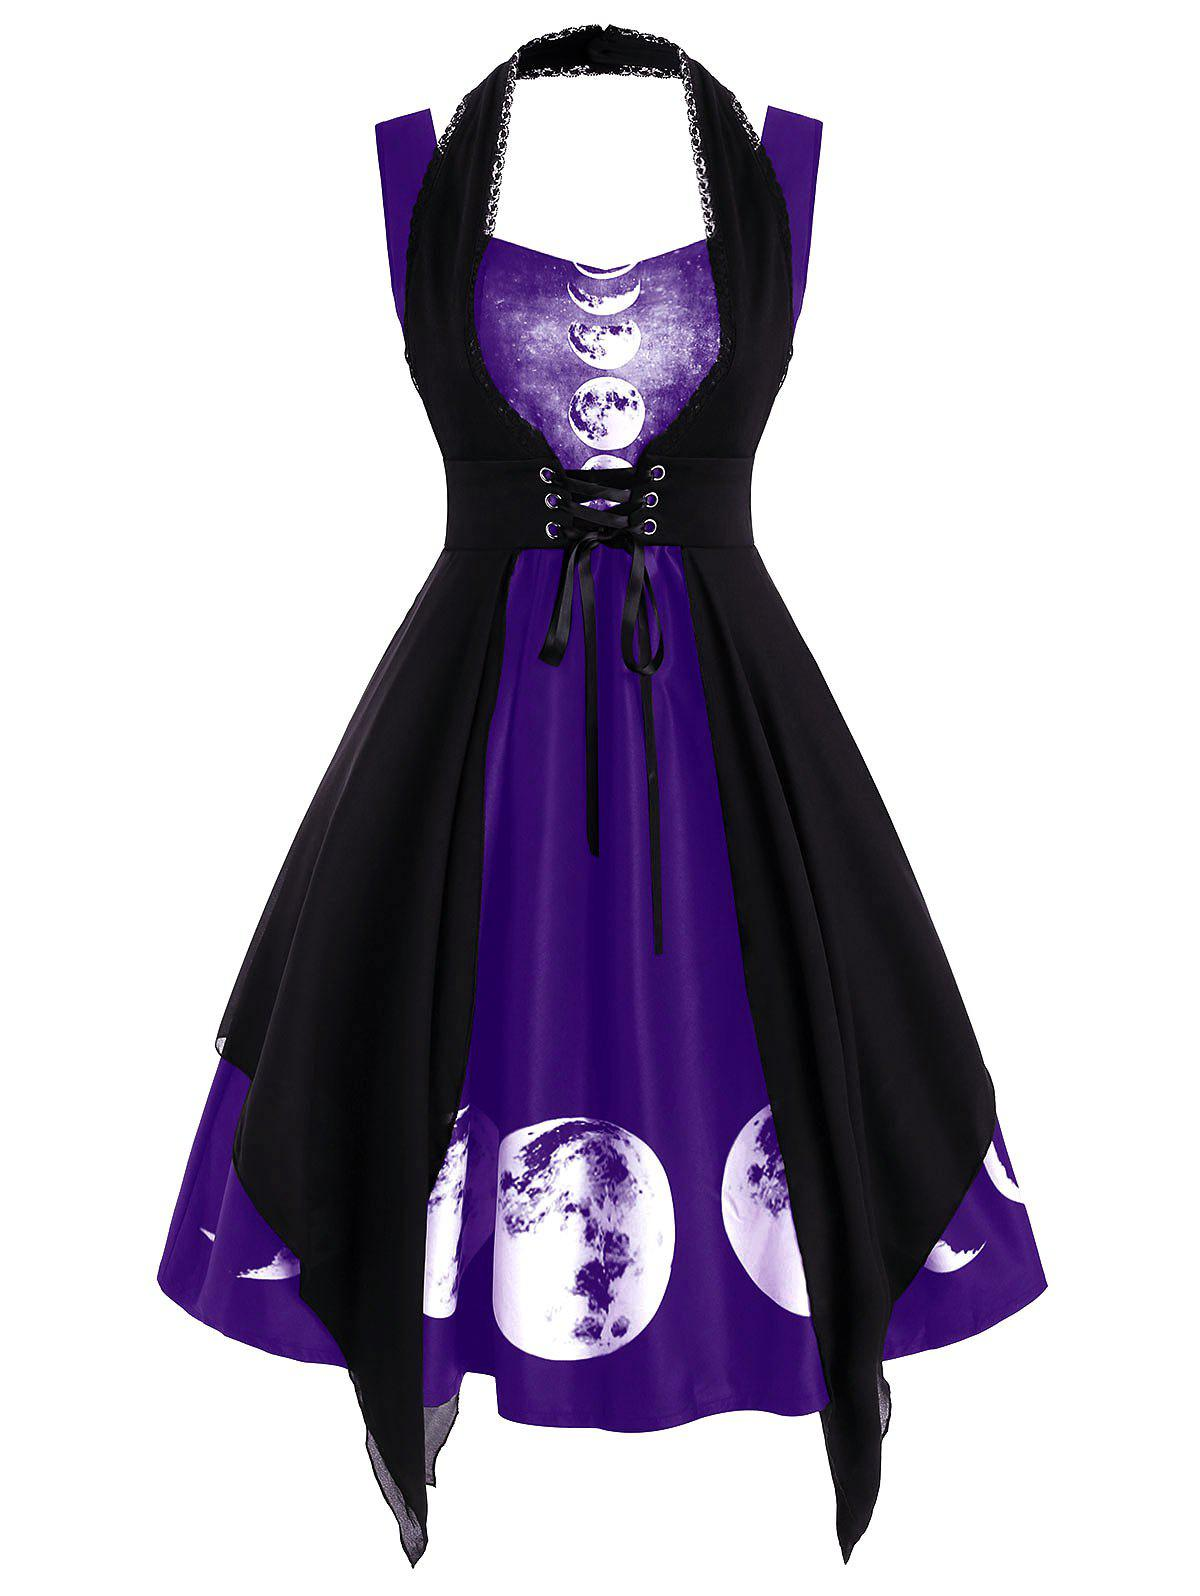 Sale Sweetheart Lunar Eclipse Print Dress with Lace Panel Corset